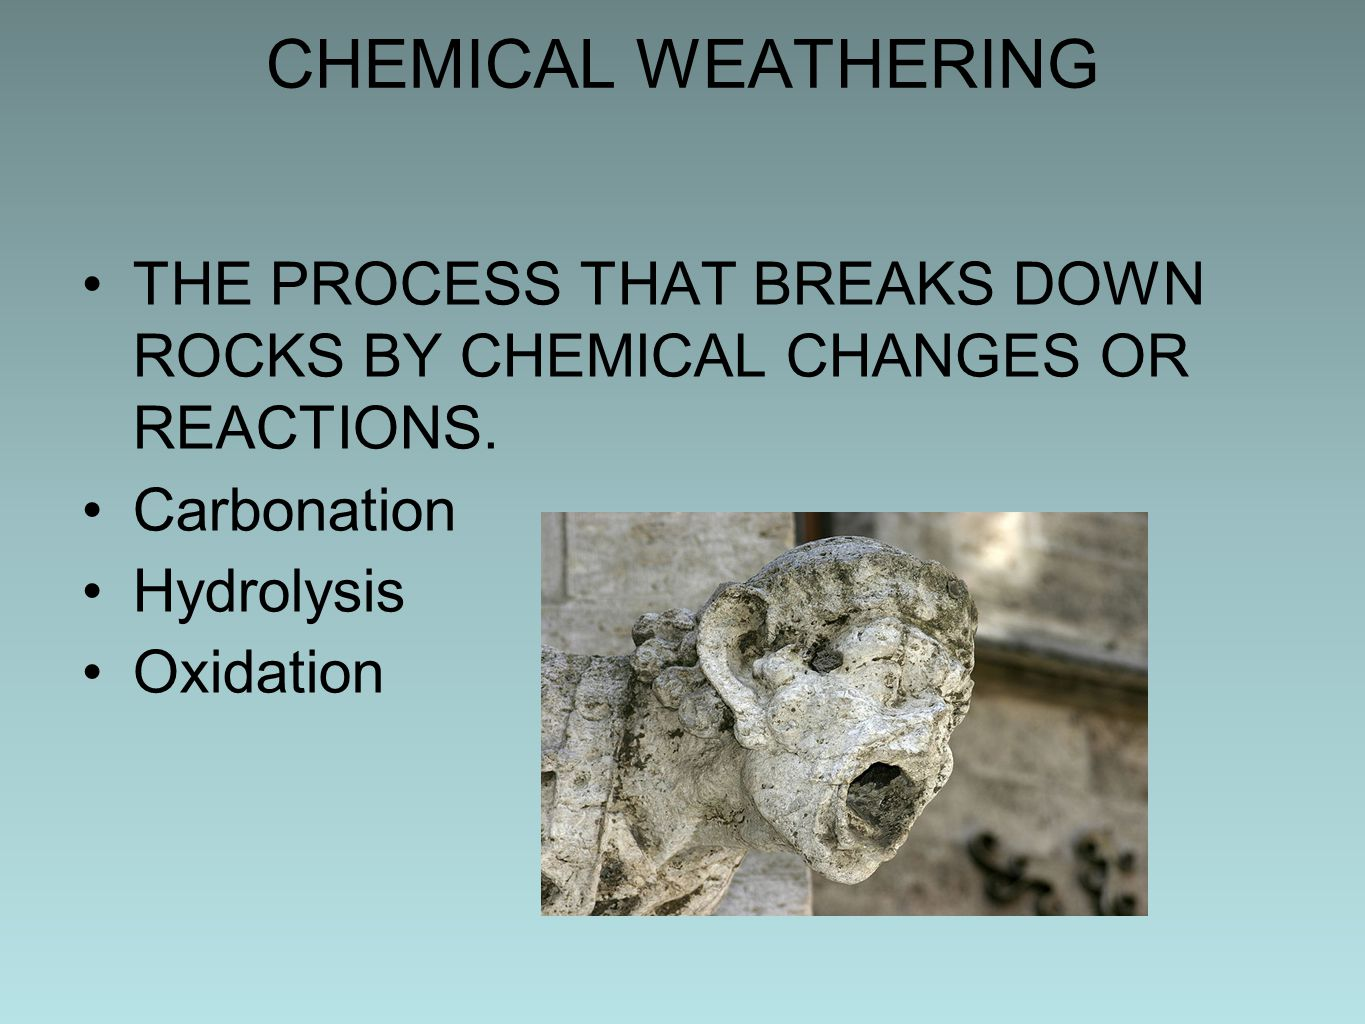 CHEMICAL WEATHERING THE PROCESS THAT BREAKS DOWN ROCKS BY CHEMICAL CHANGES OR REACTIONS. Carbonation.